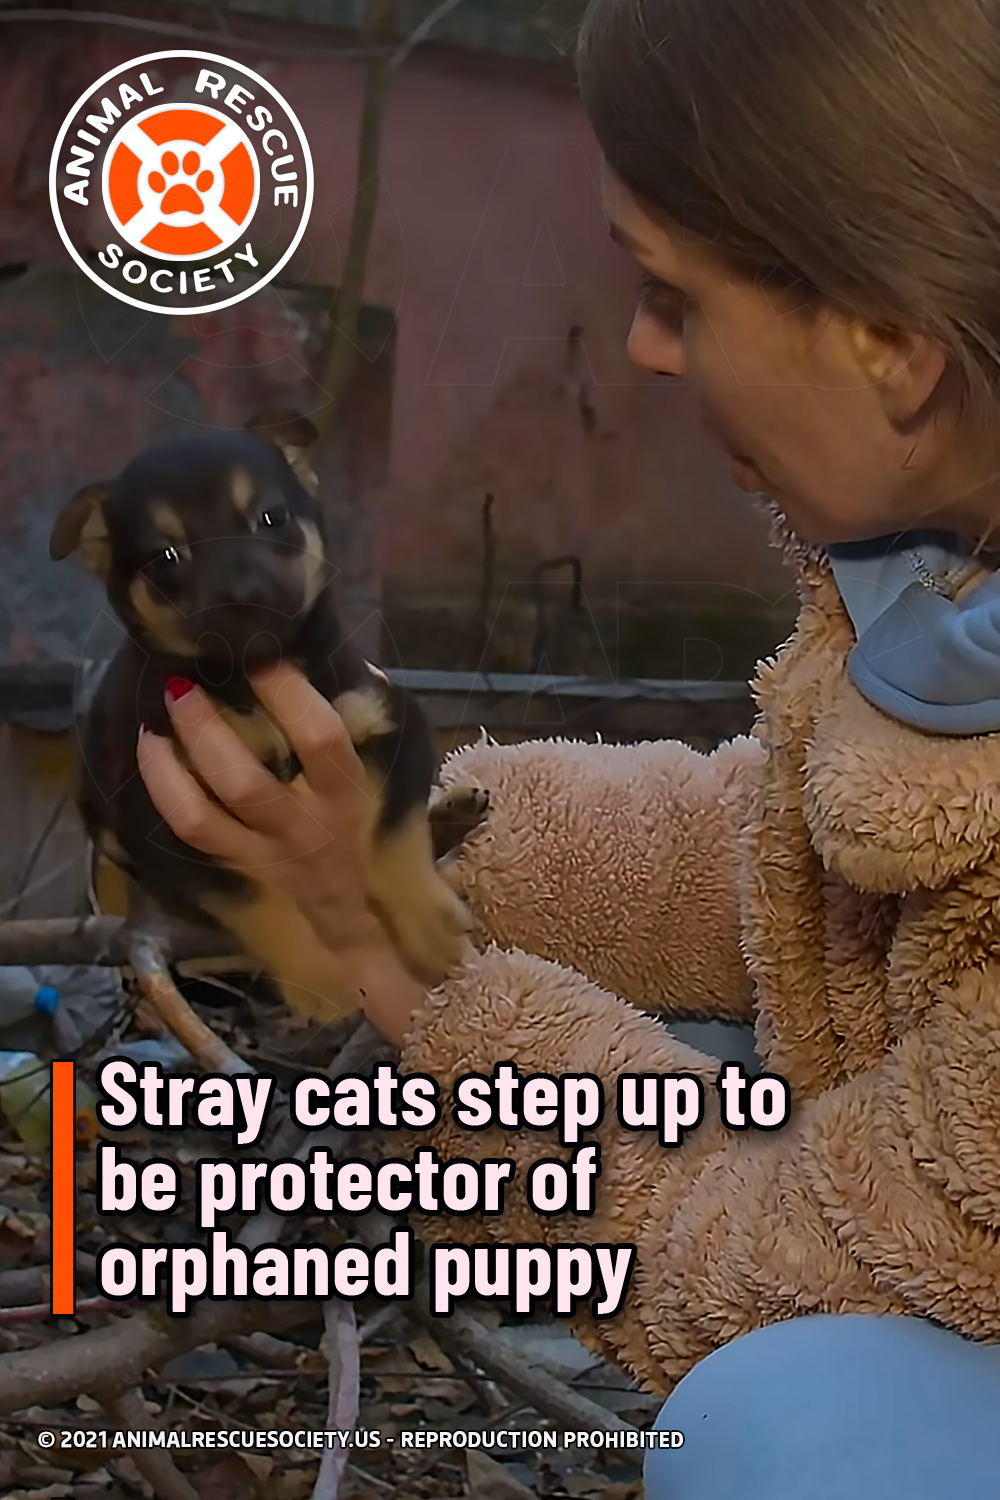 Stray cats step up to be protector of orphaned puppy